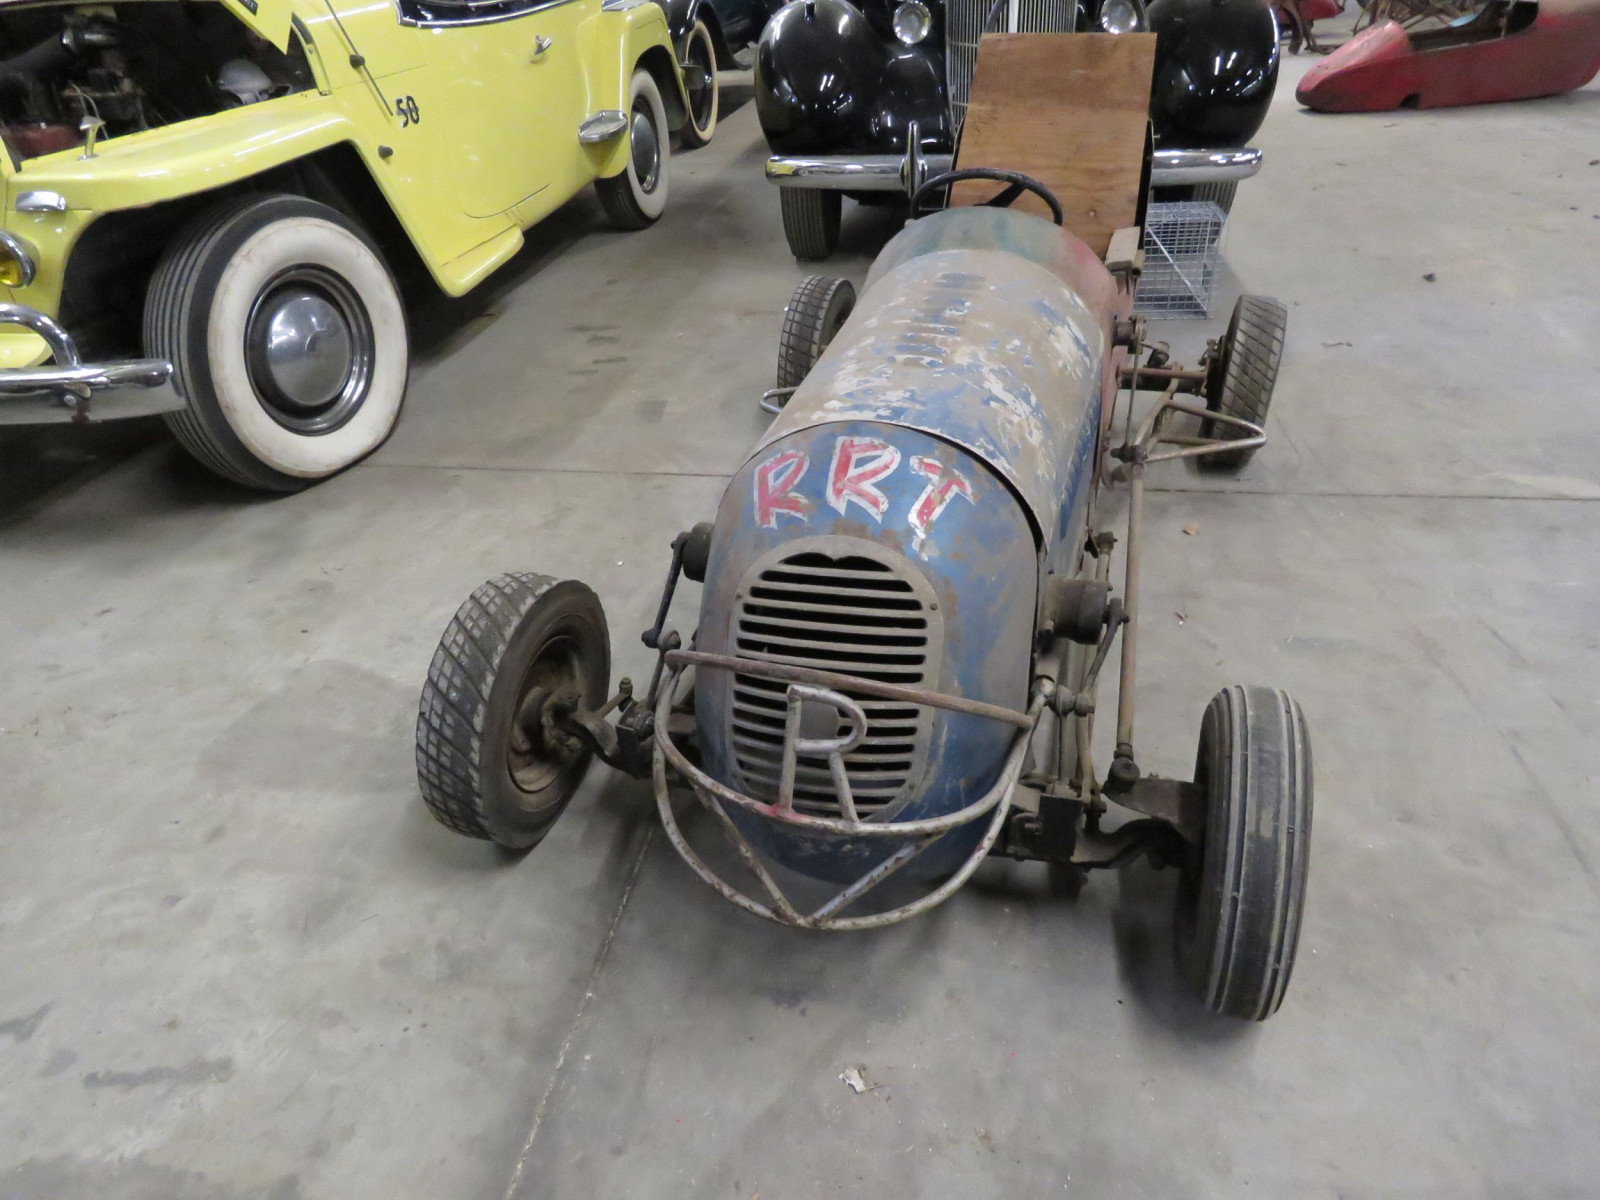 Vintage Early 1/4 Midget Race Car - Image 2